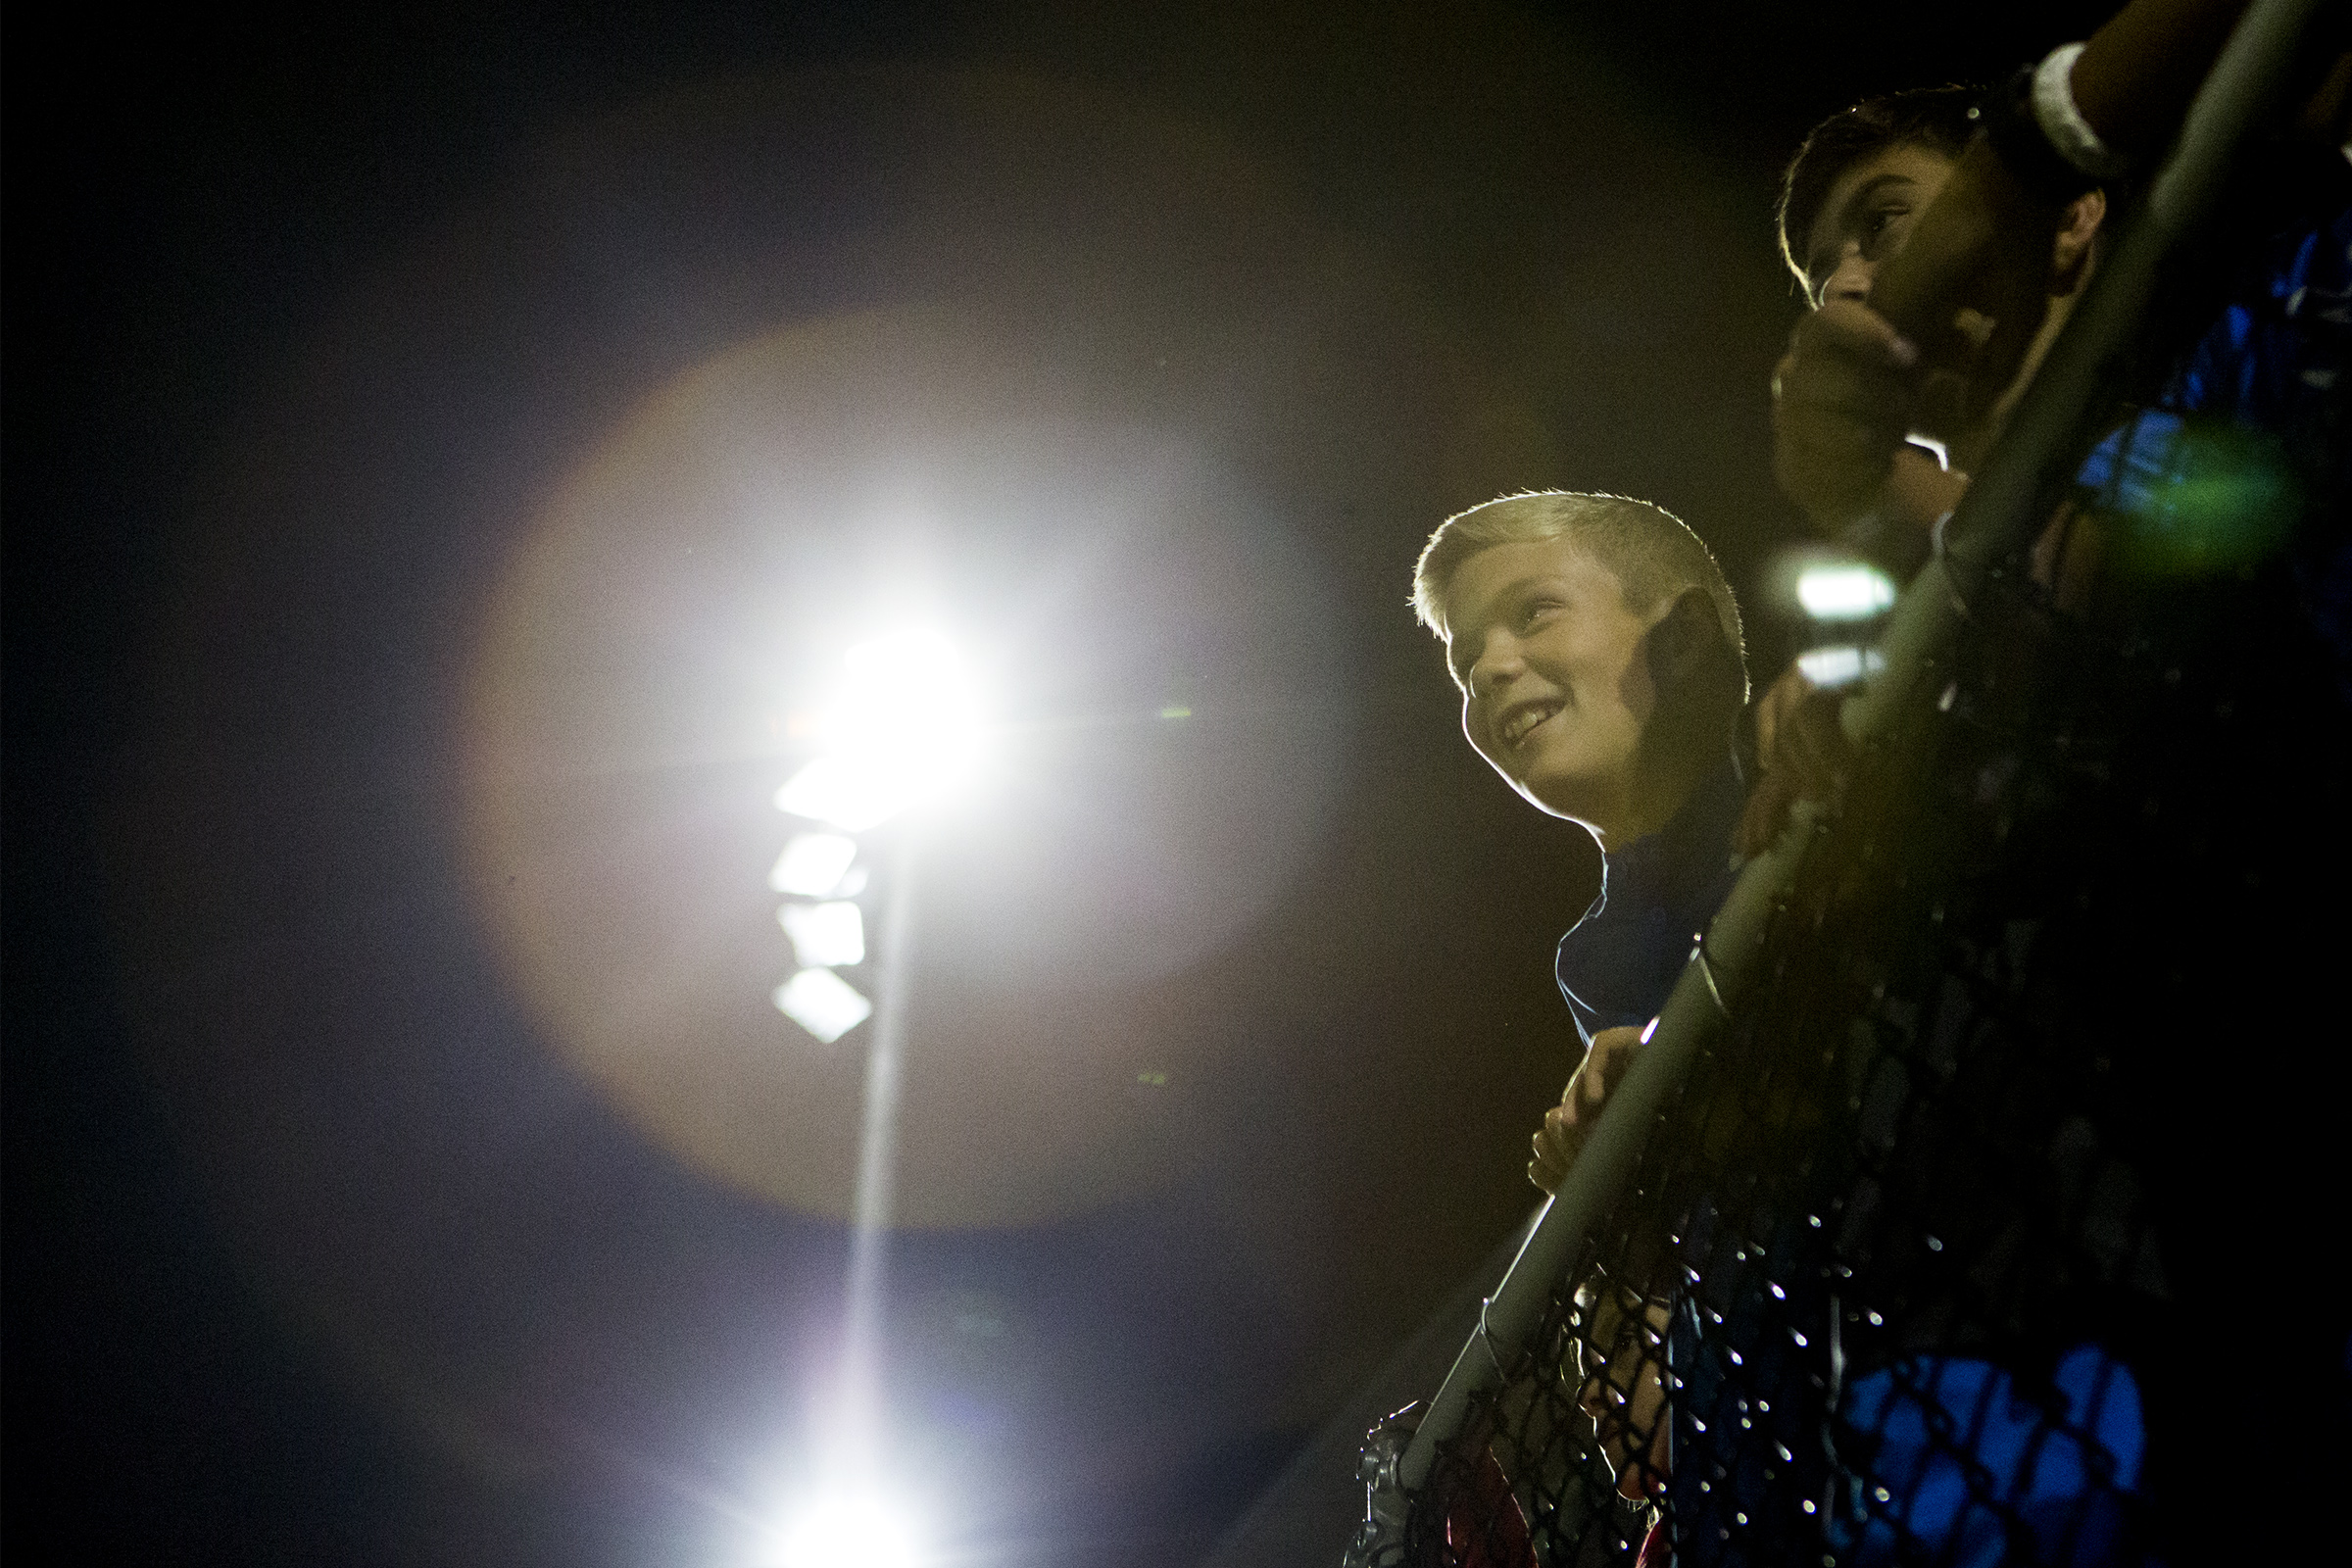 Louie Bottari, 12, watches the first football game of the season under the new lighting system installed at Knowlton Stadium in Winchester on Sept. 7, 2018.